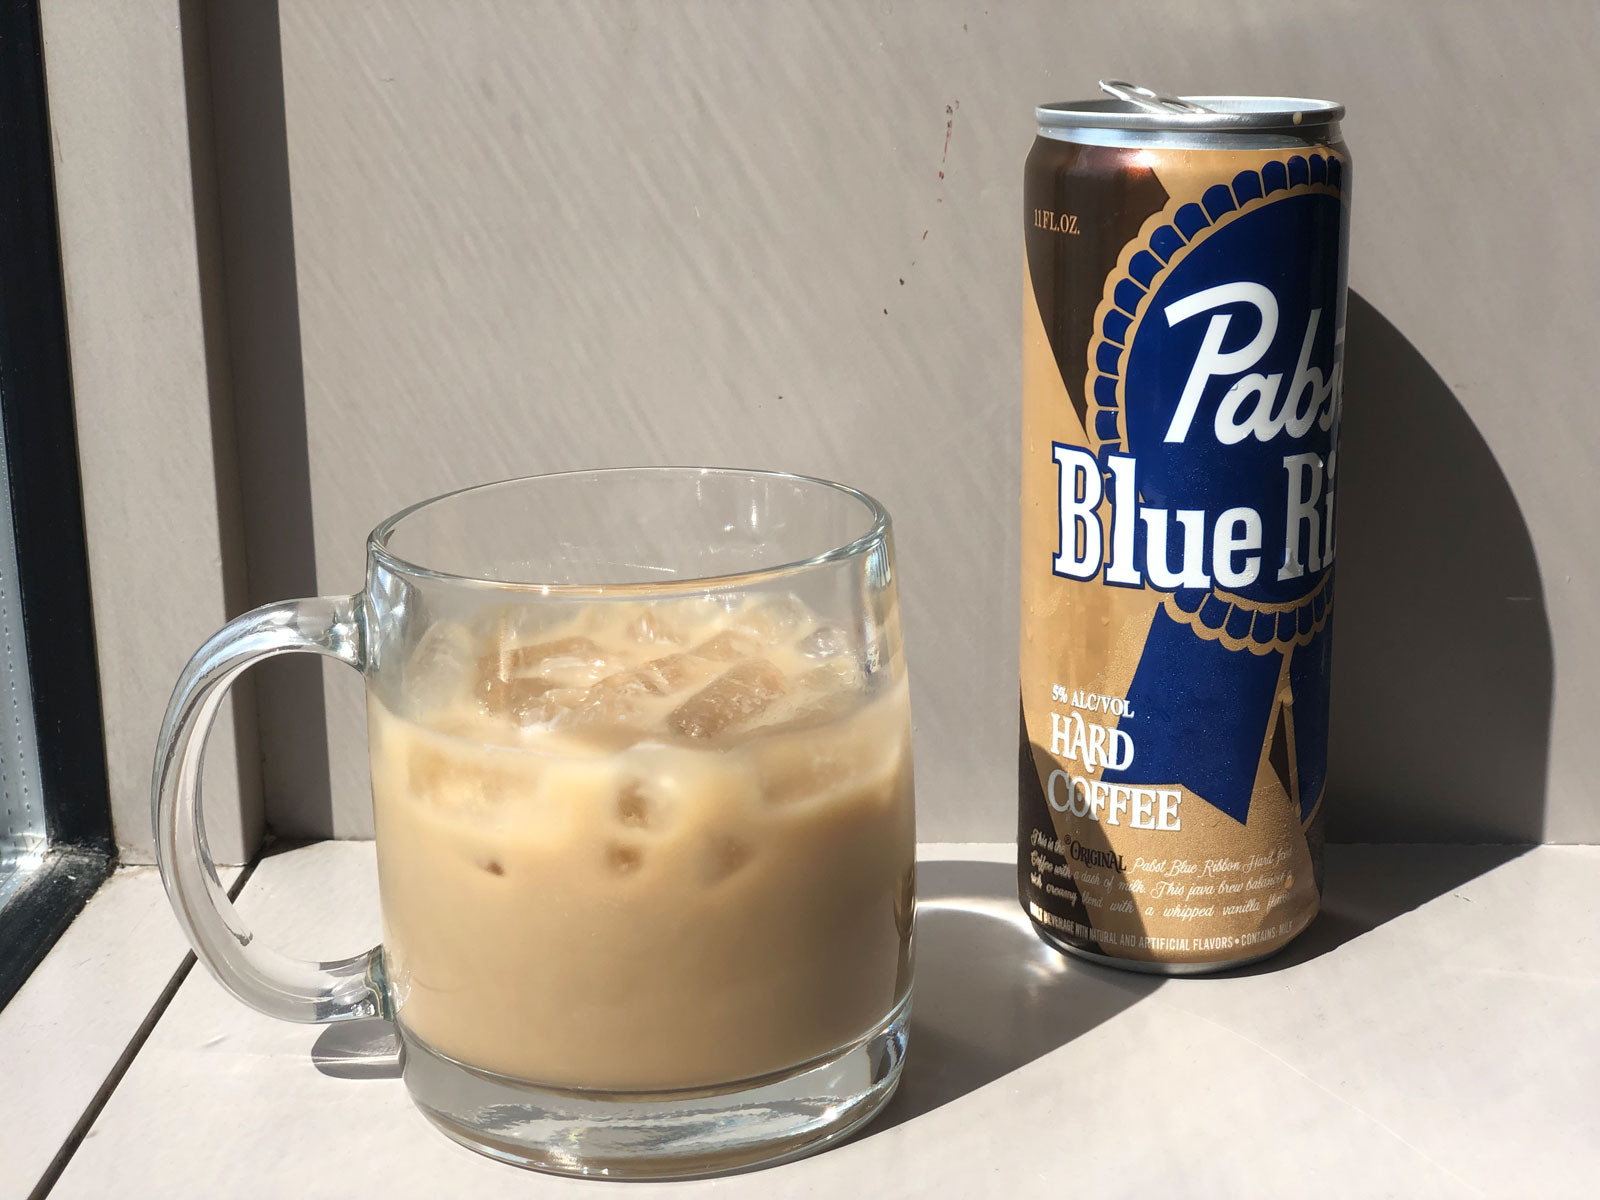 We Tried Pabst Blue Ribbon Hard Coffee